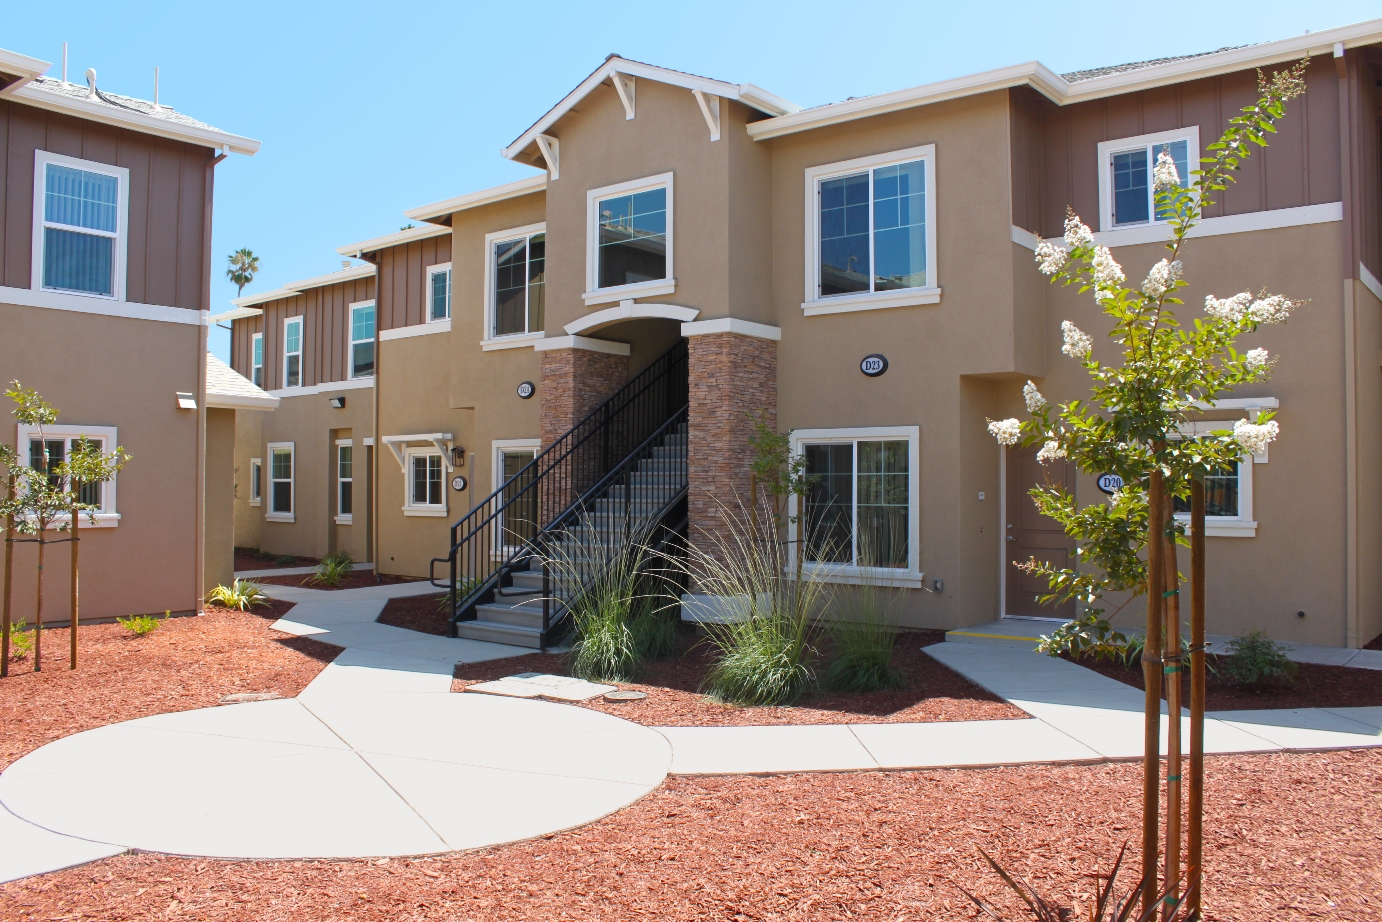 Image of Buena Vista Apartments in Hollister, California